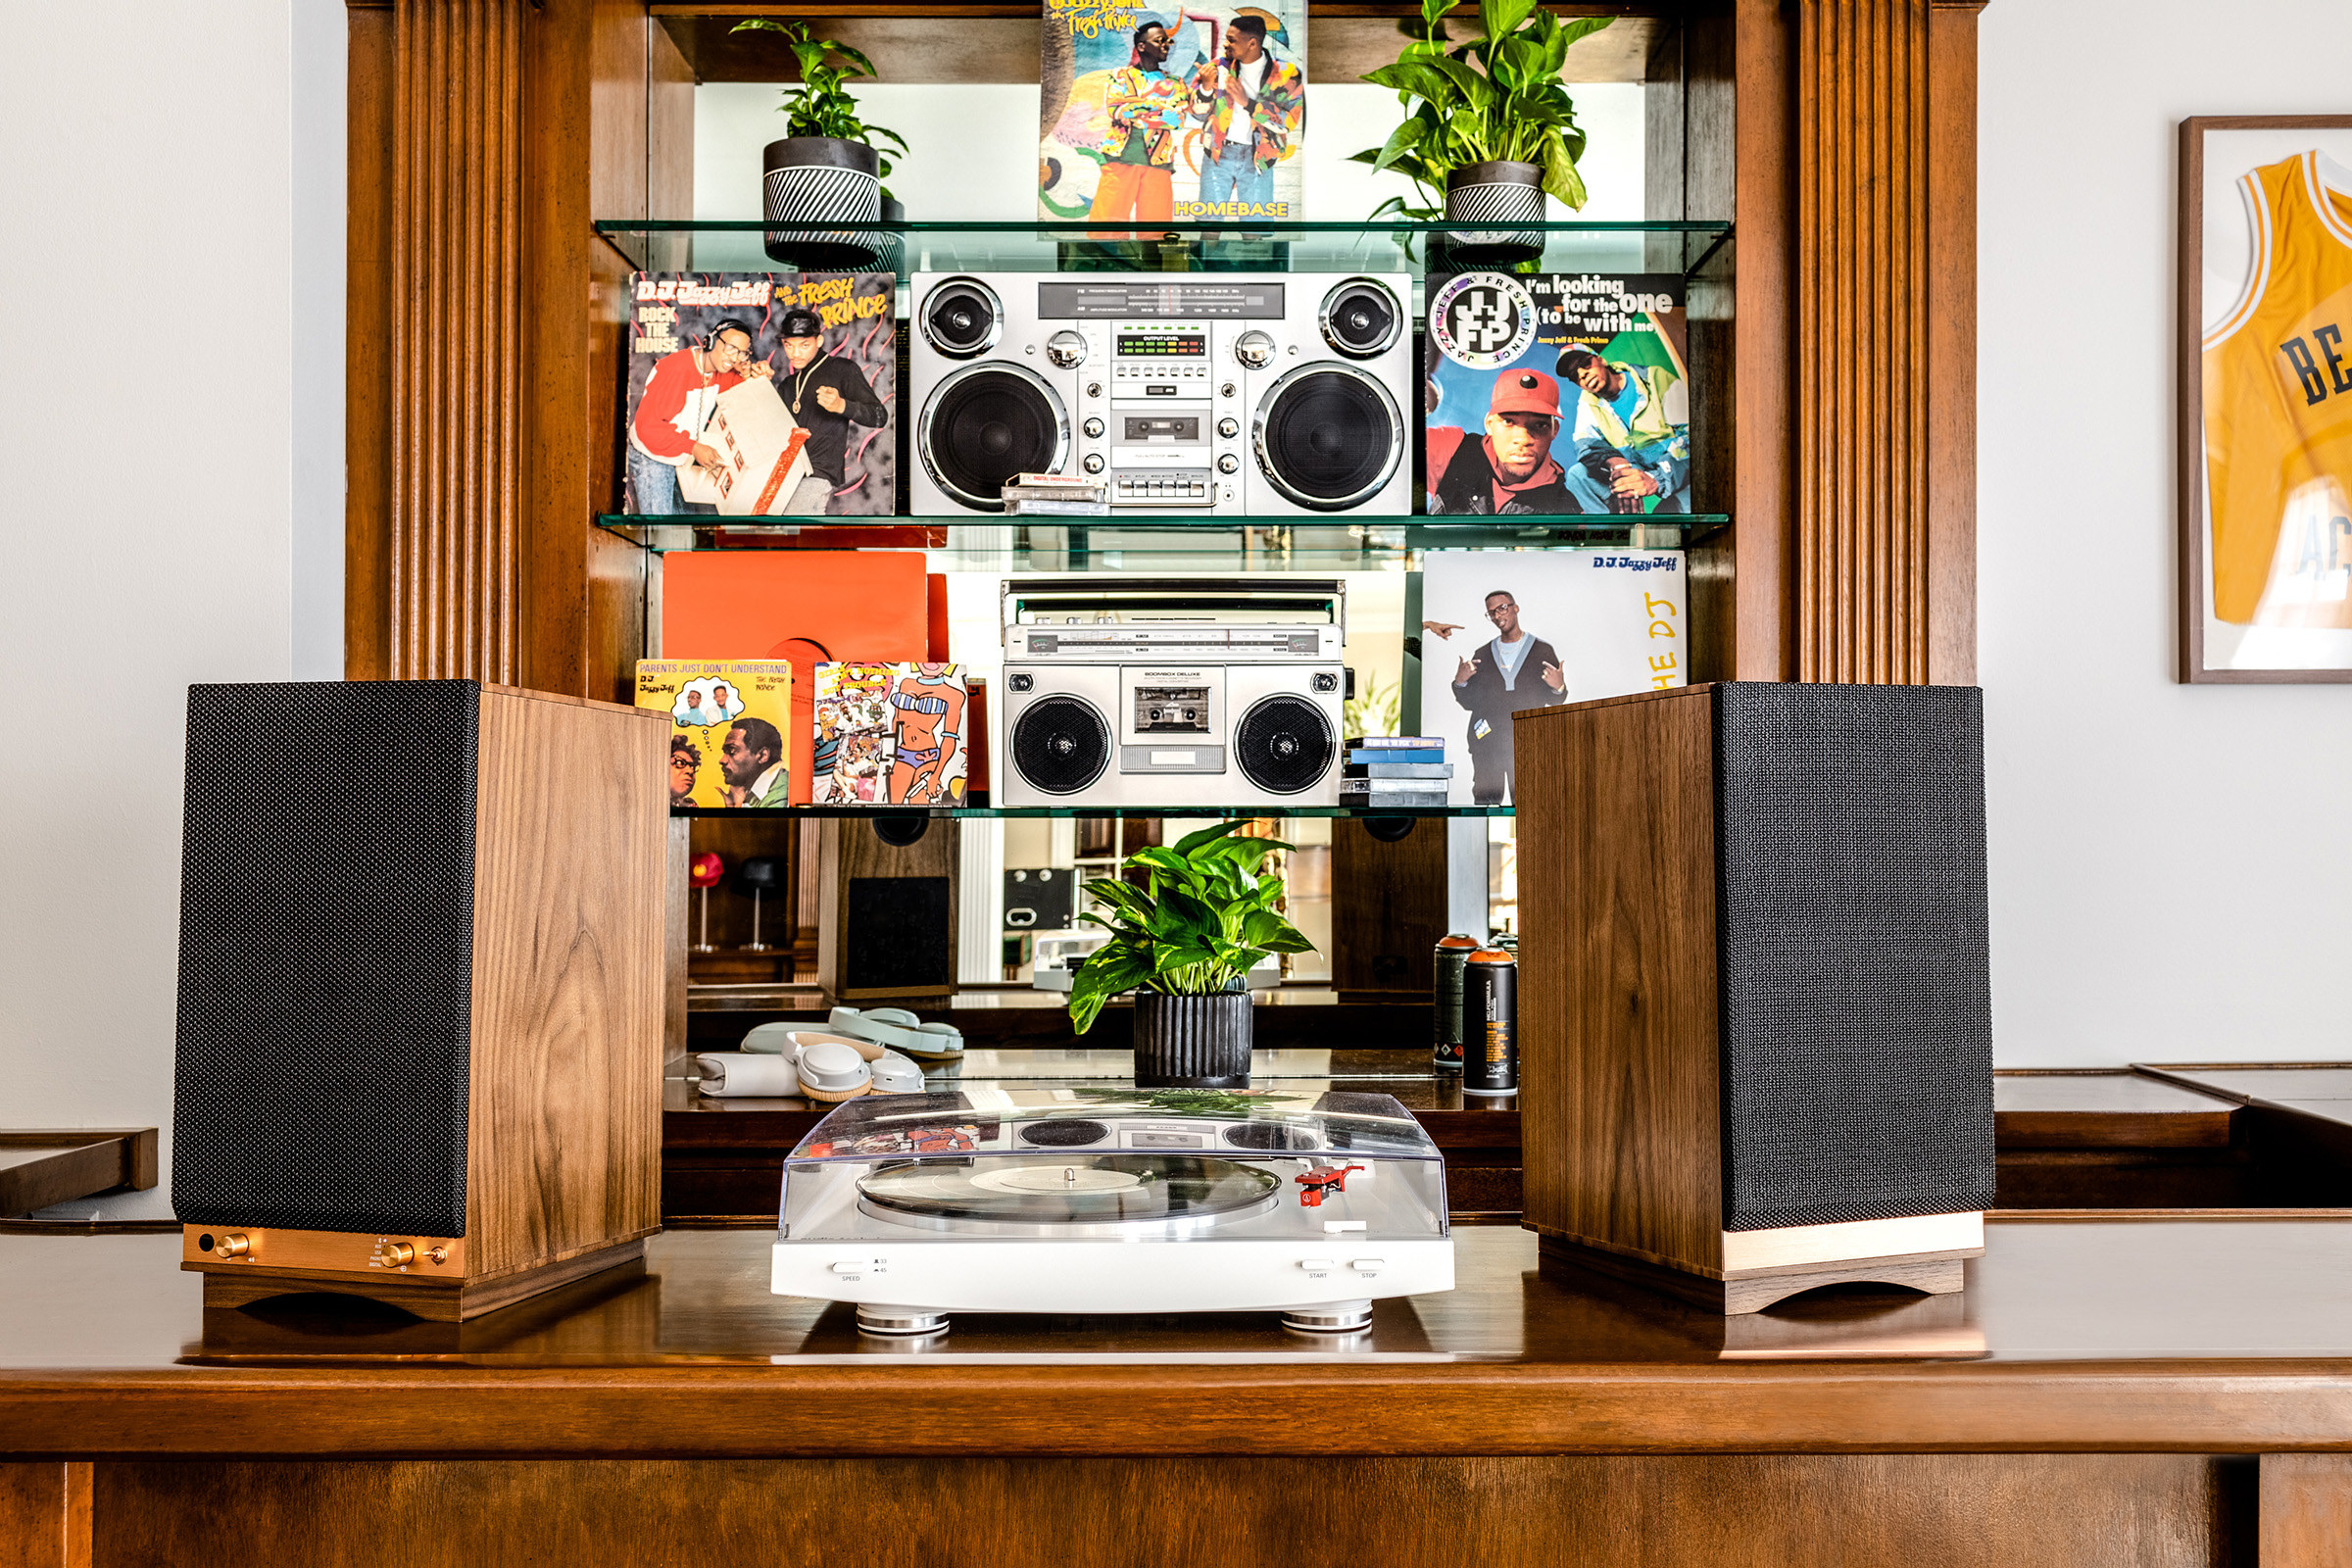 A dark wooden table holds a record player and speakers with shelving of stereos and vinyls behind it